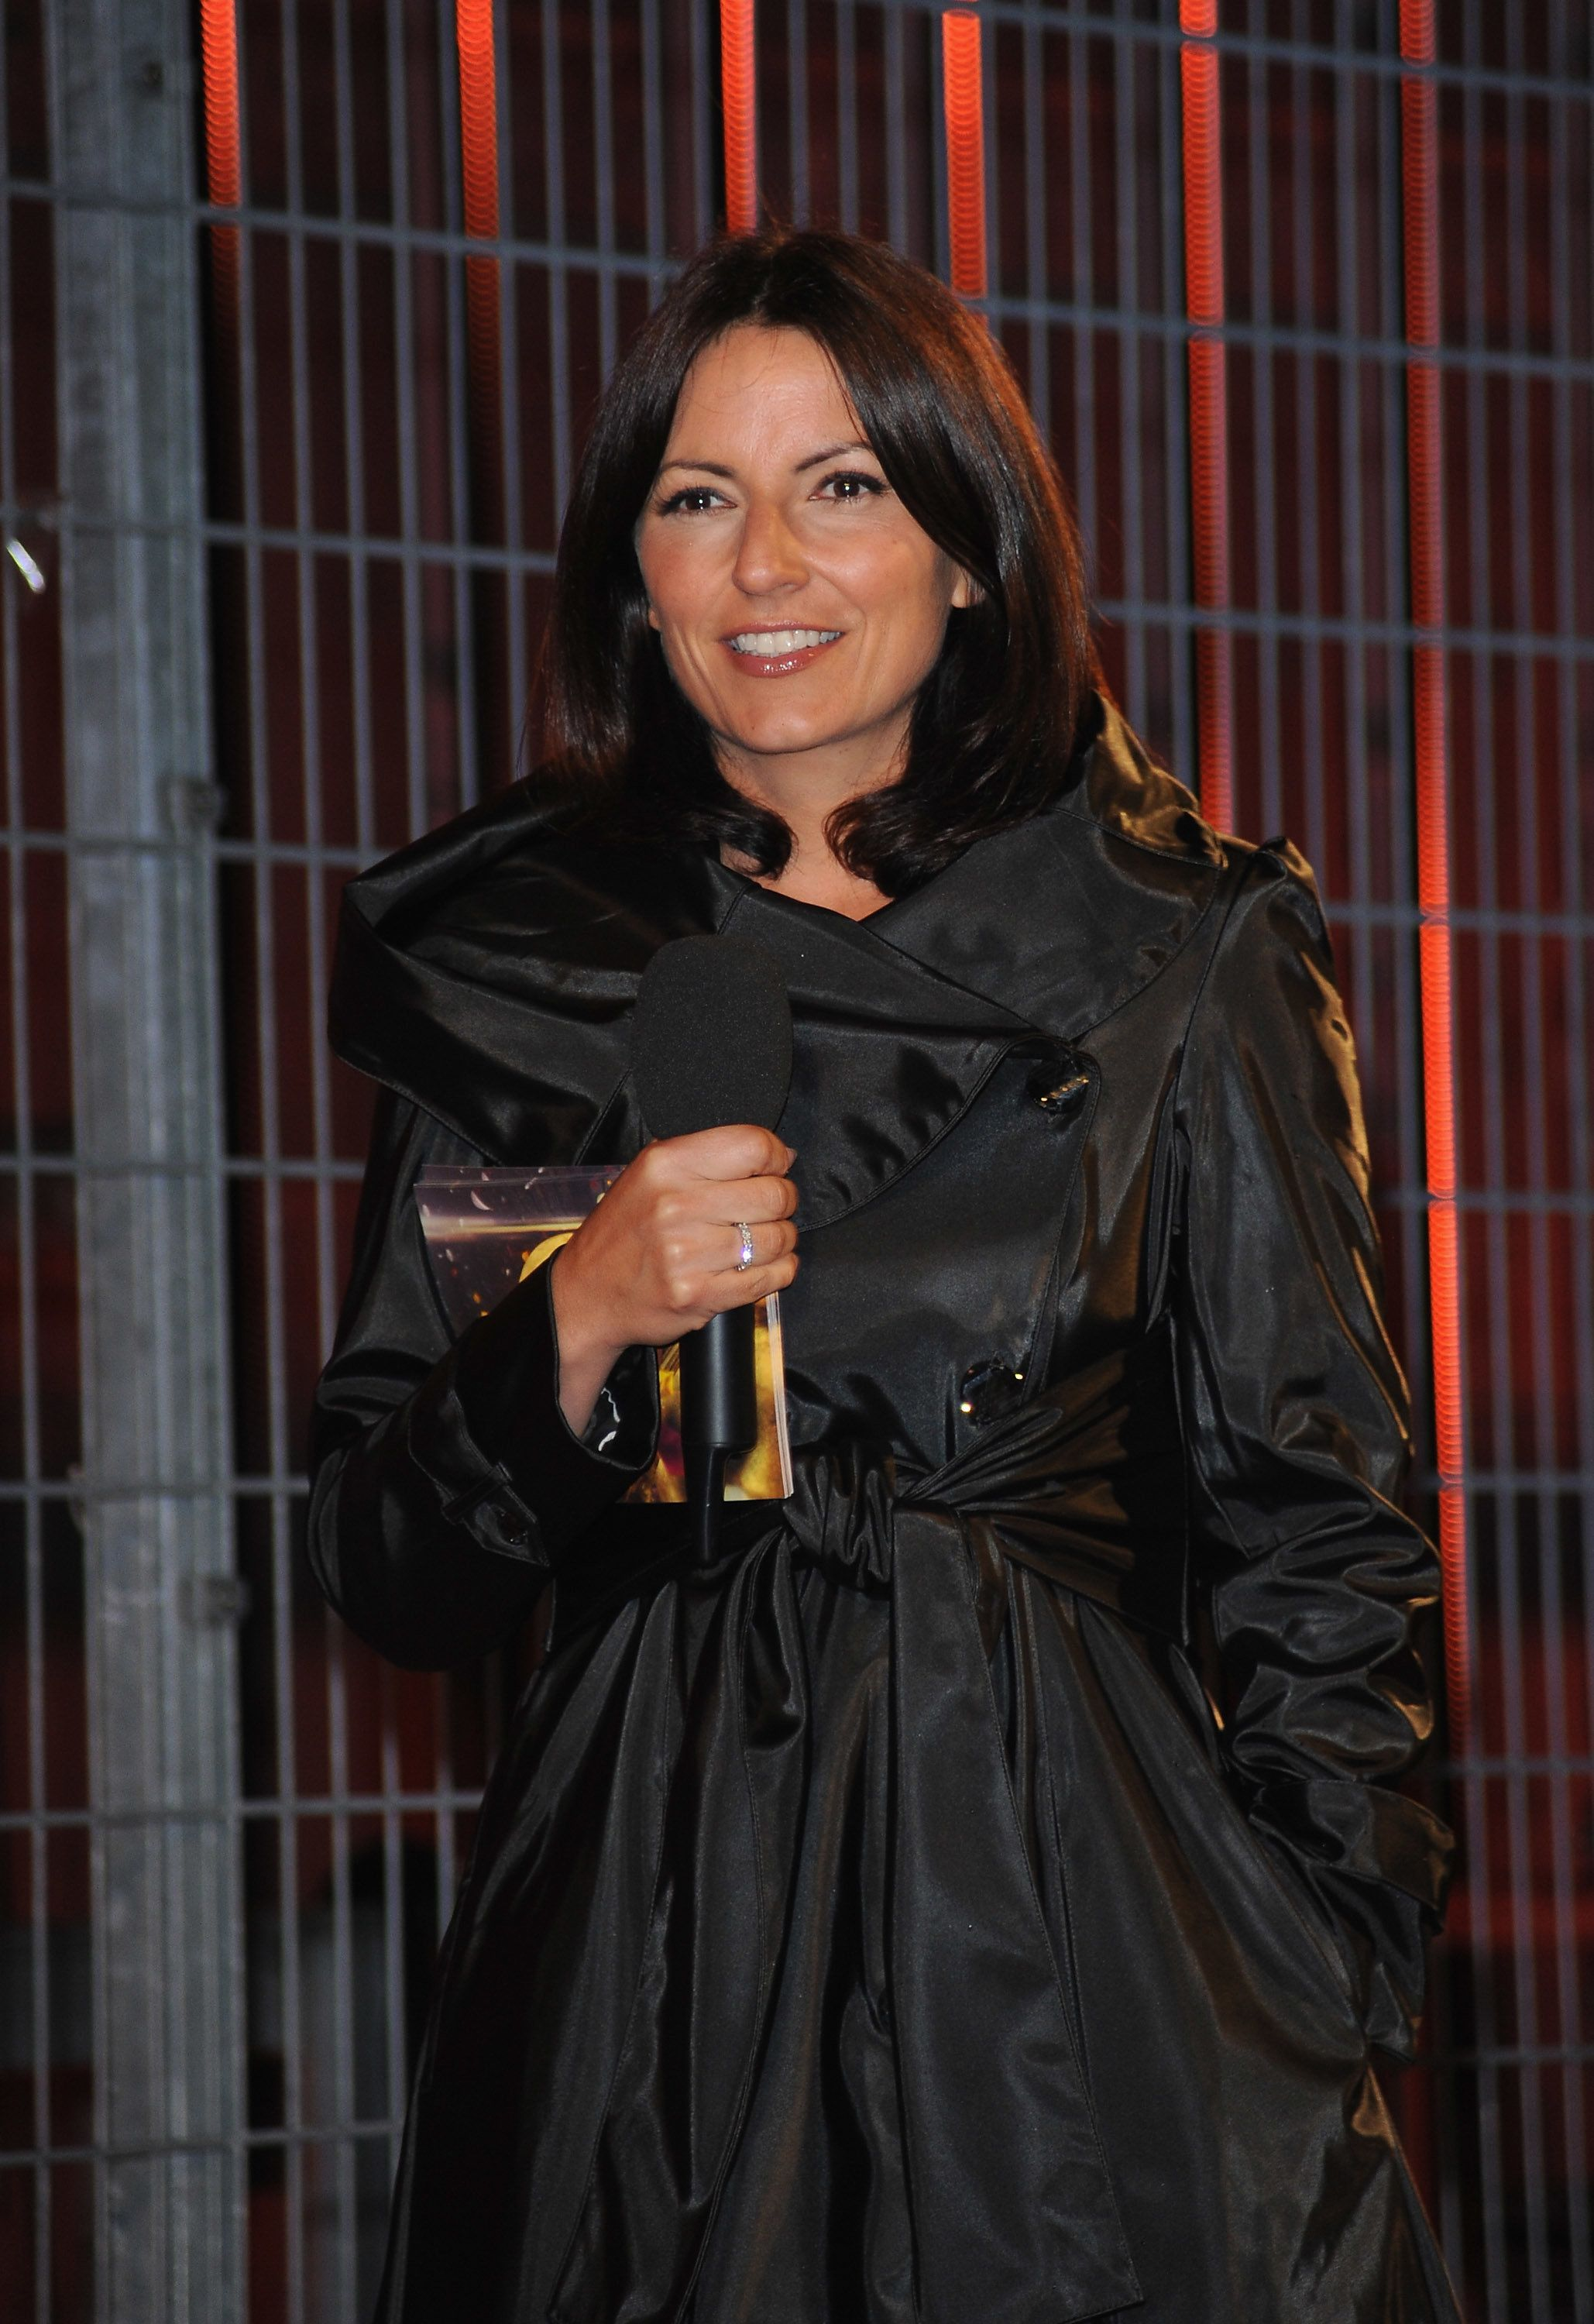 Davina McCall Makes A Sort-Of Return To 'Big Brother' With A Special Message For